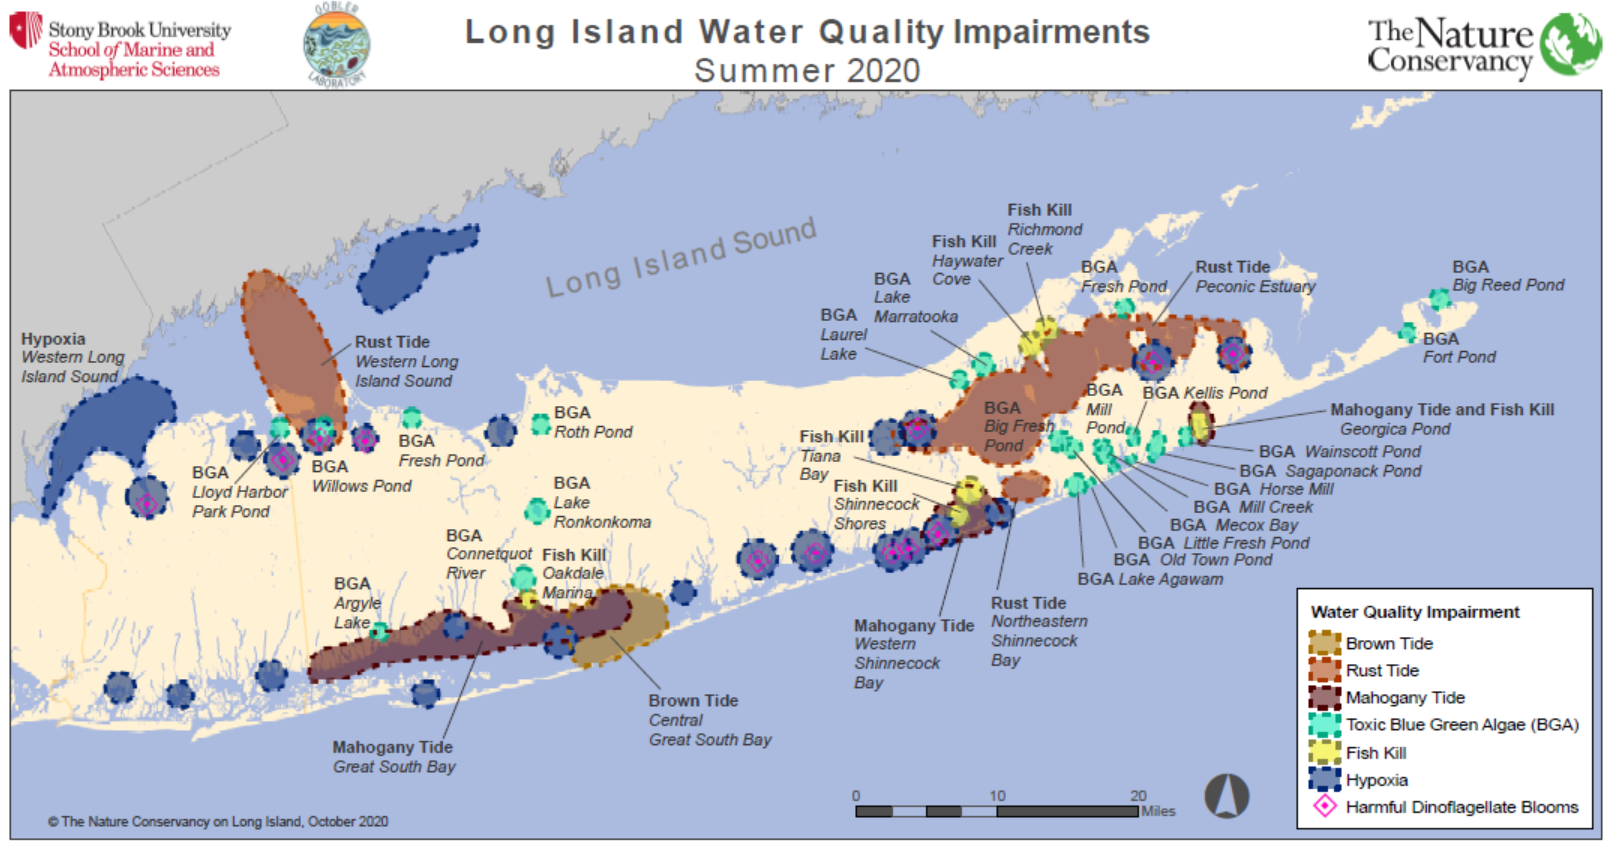 Map of Long Island showing areas where algae blooms and low/no oxygen were observed Summer 2020